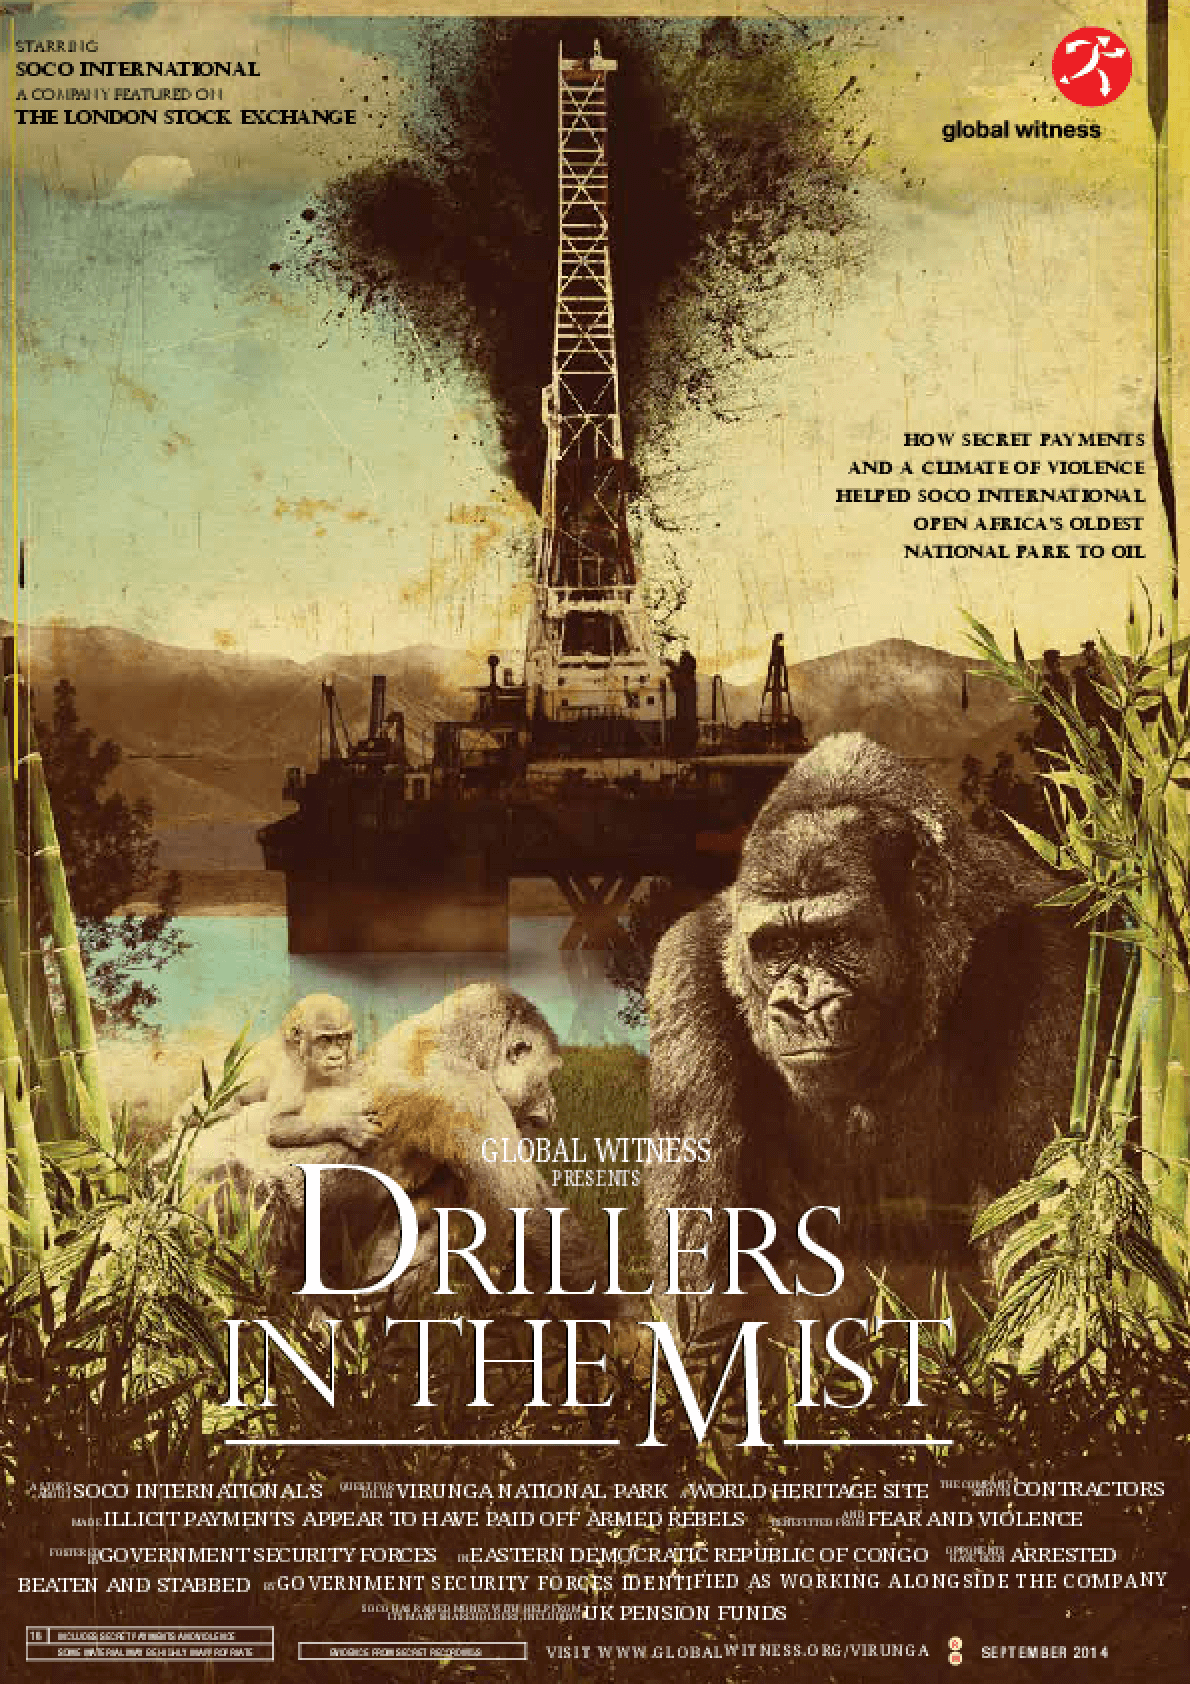 Drillers in the Mist